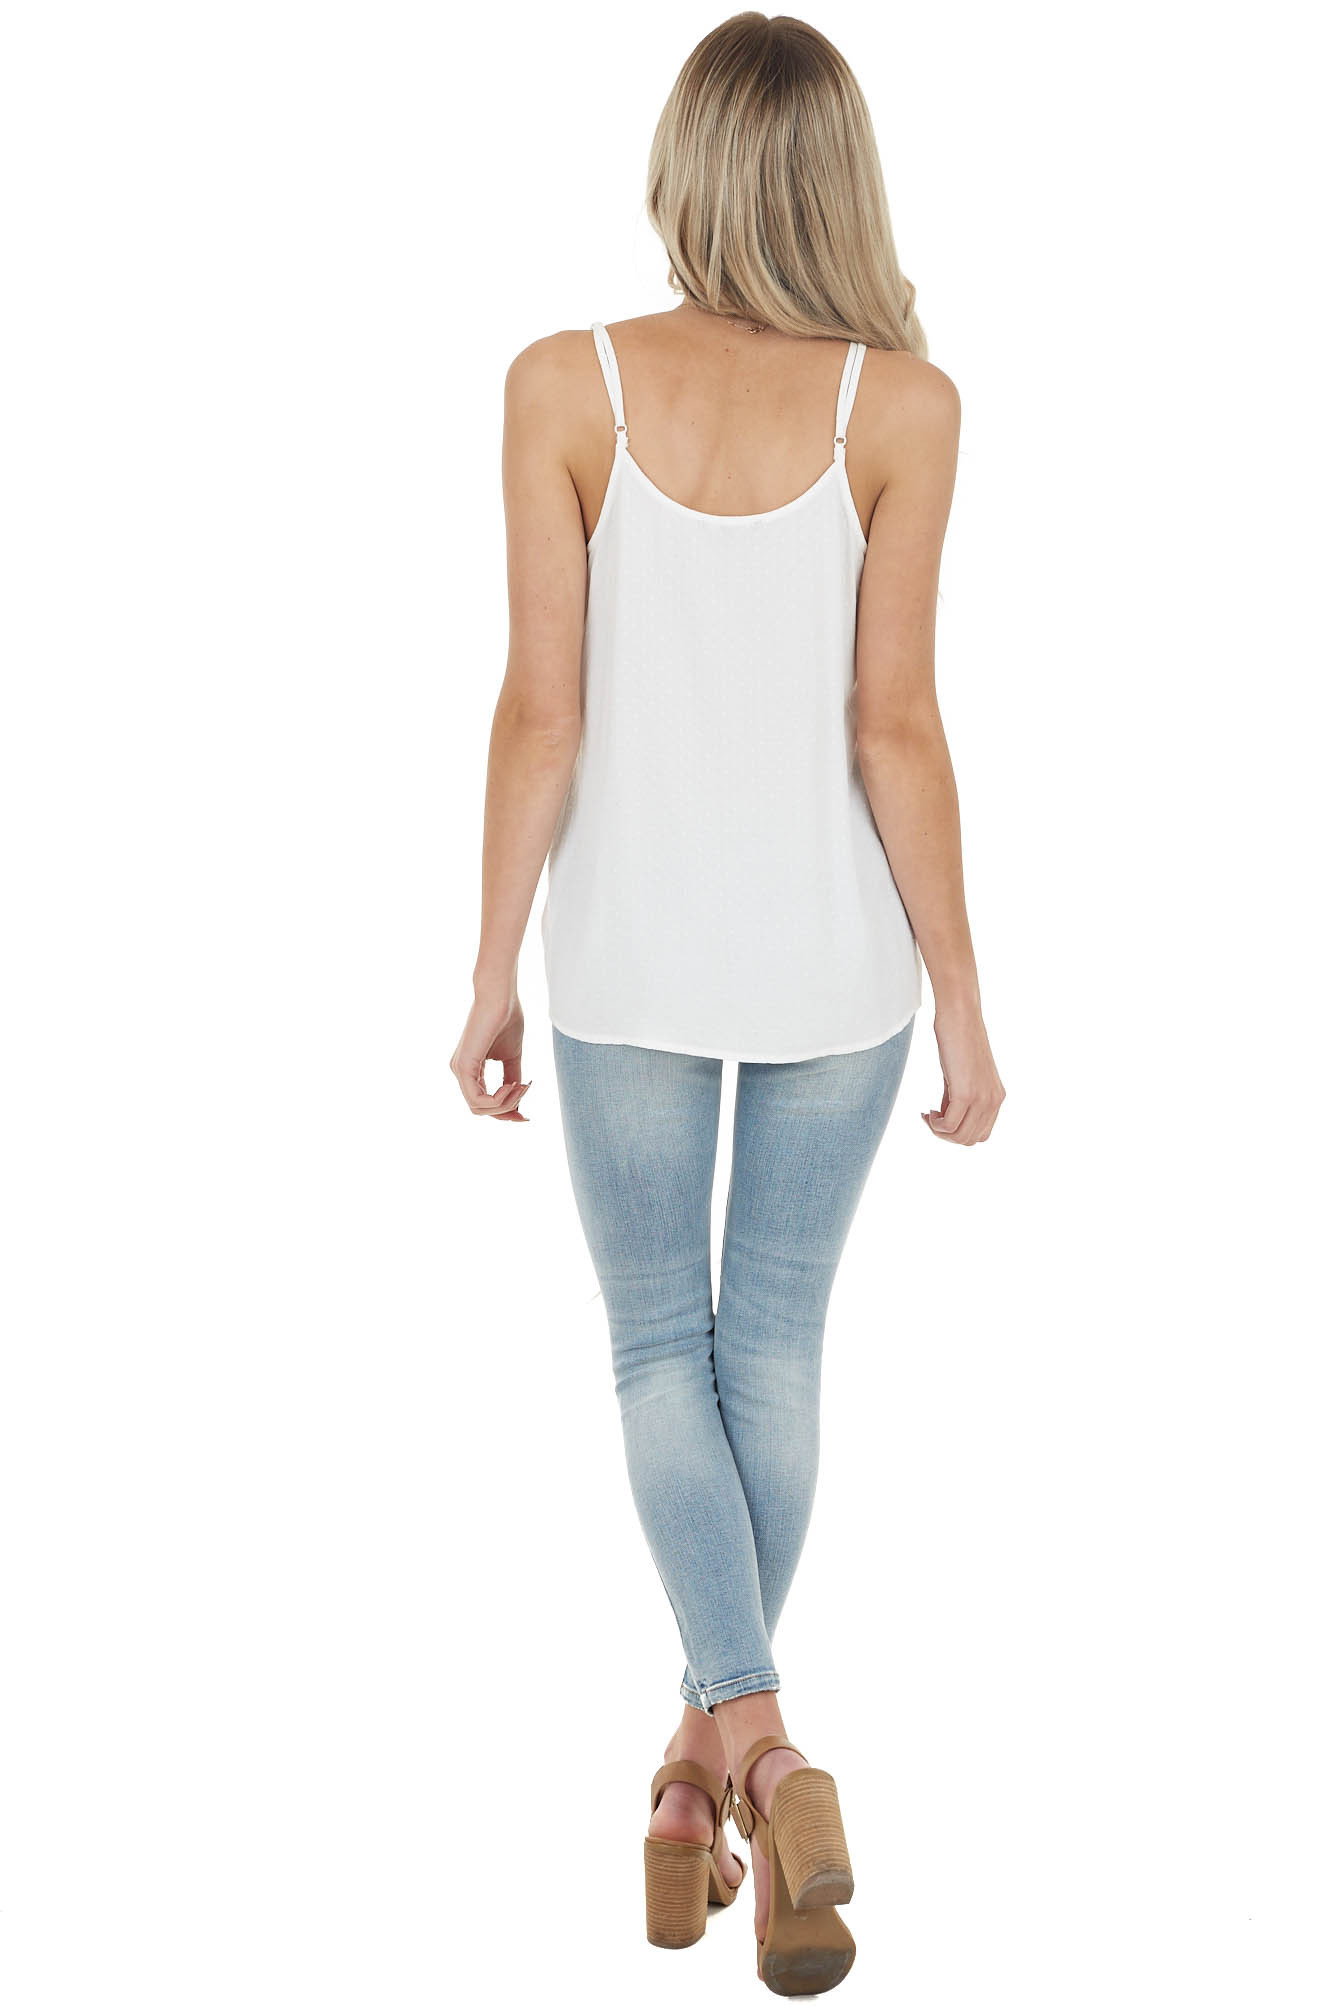 Off White Textured Tank Top with Crochet Lace Details